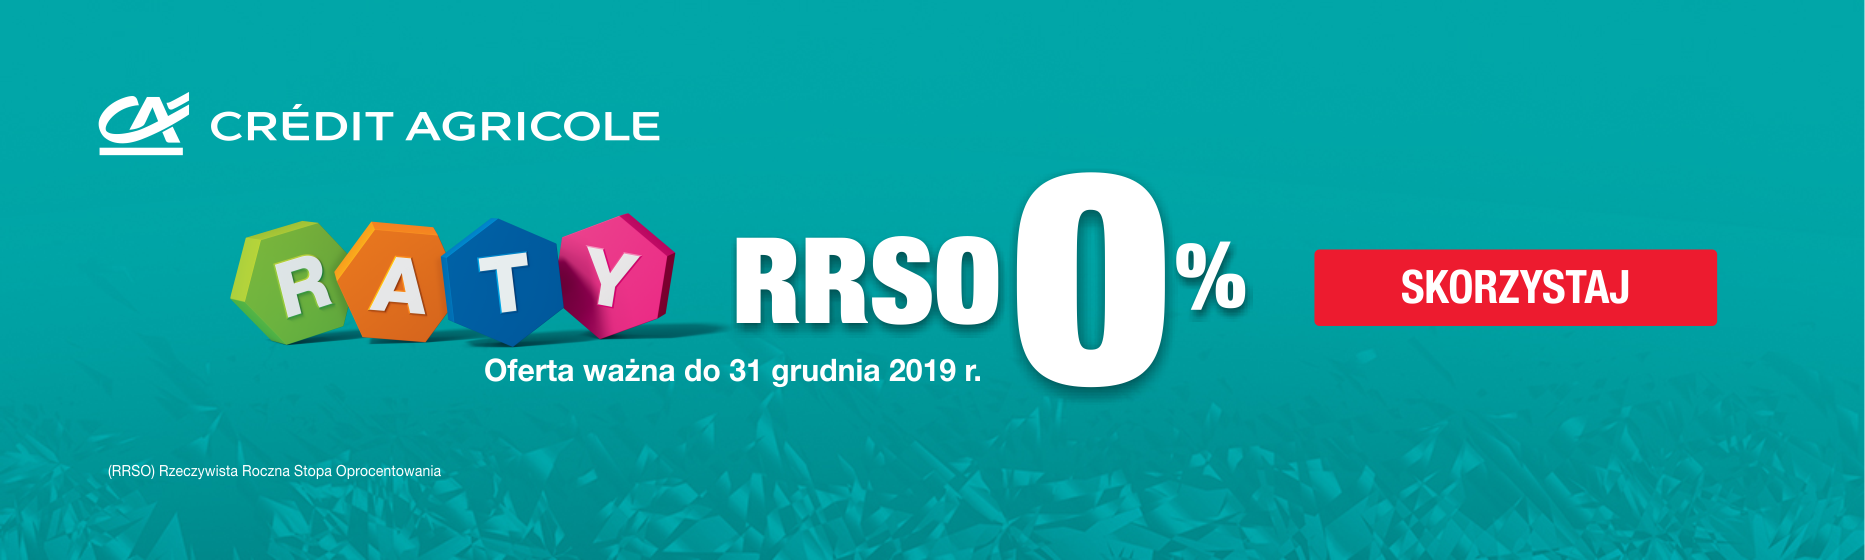 RRSO 0% Credit Agricole